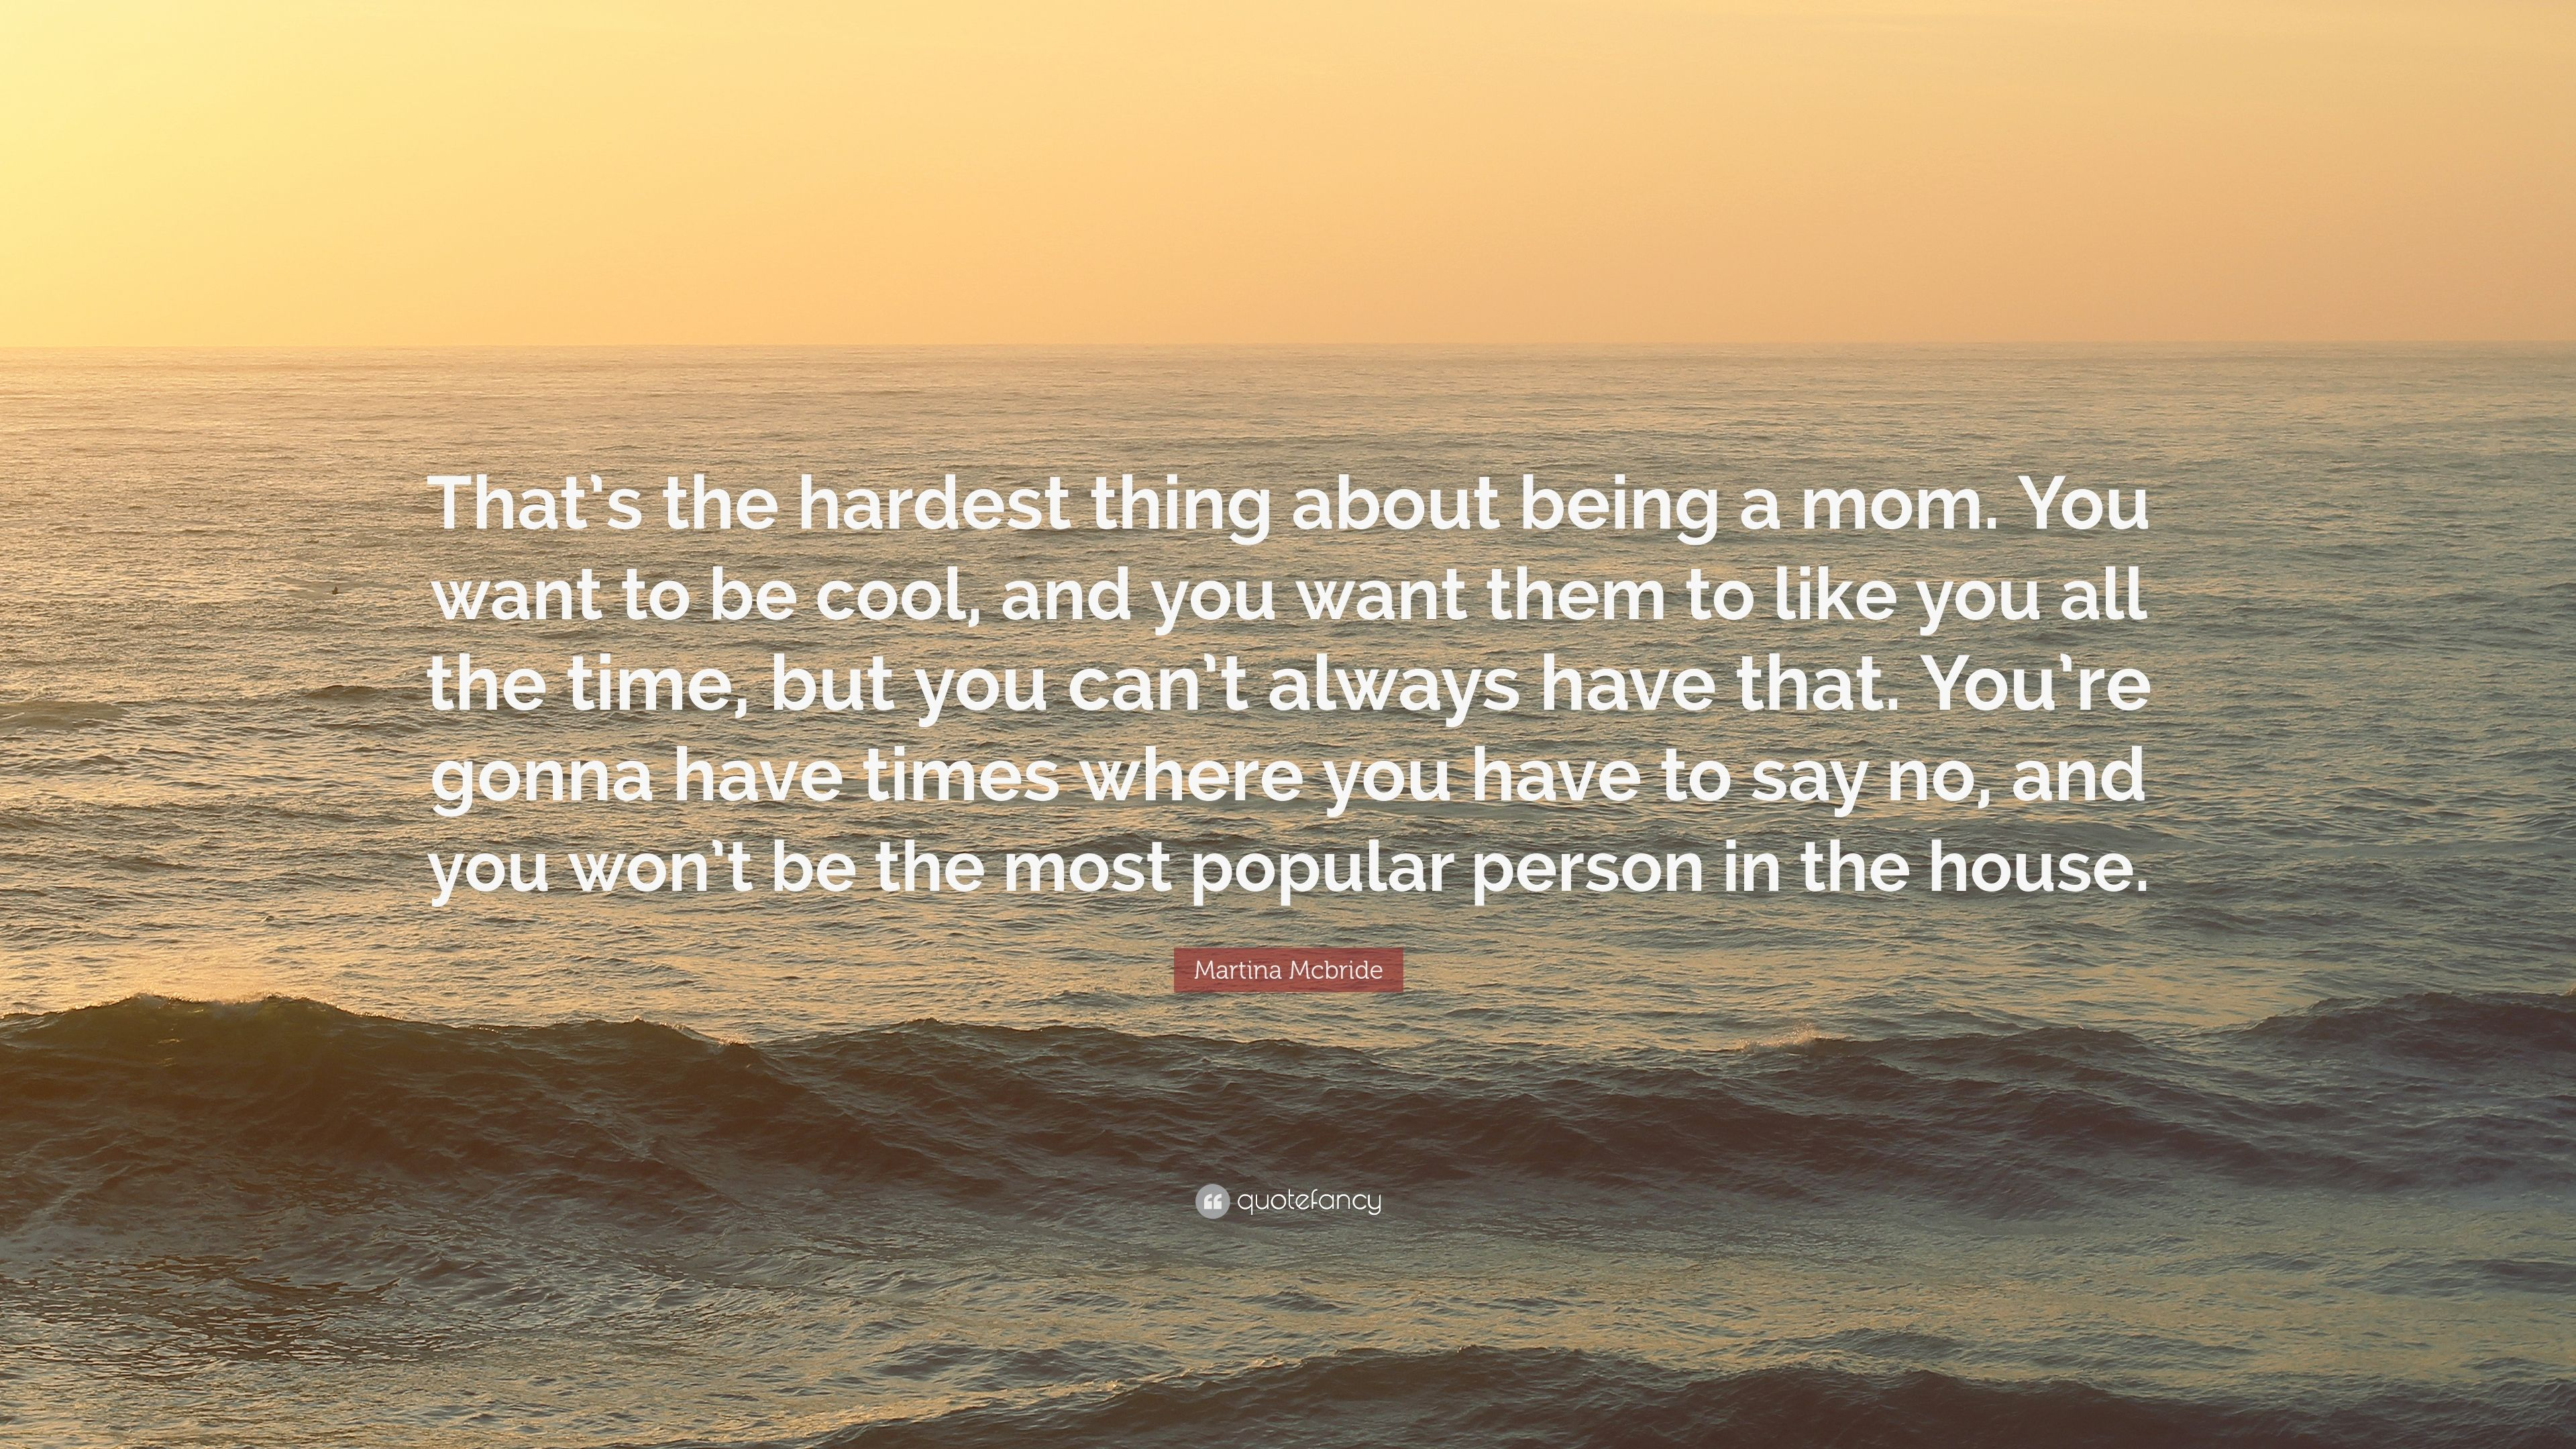 martina mcbride quote that s the hardest thing about being a mom